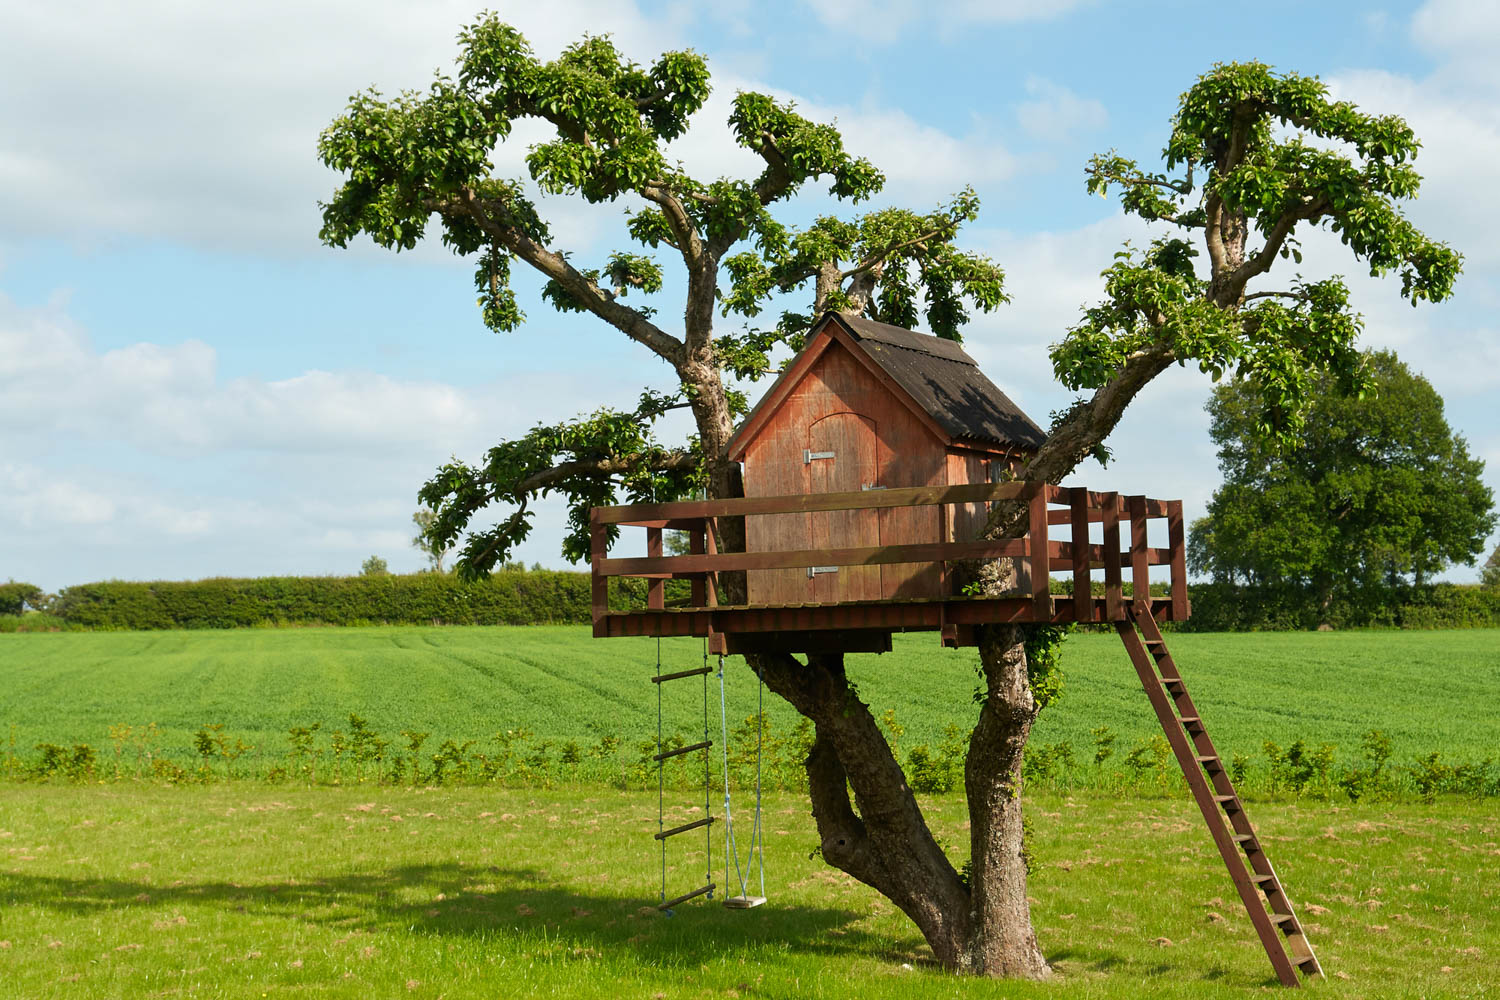 Clubhouse in a Tree